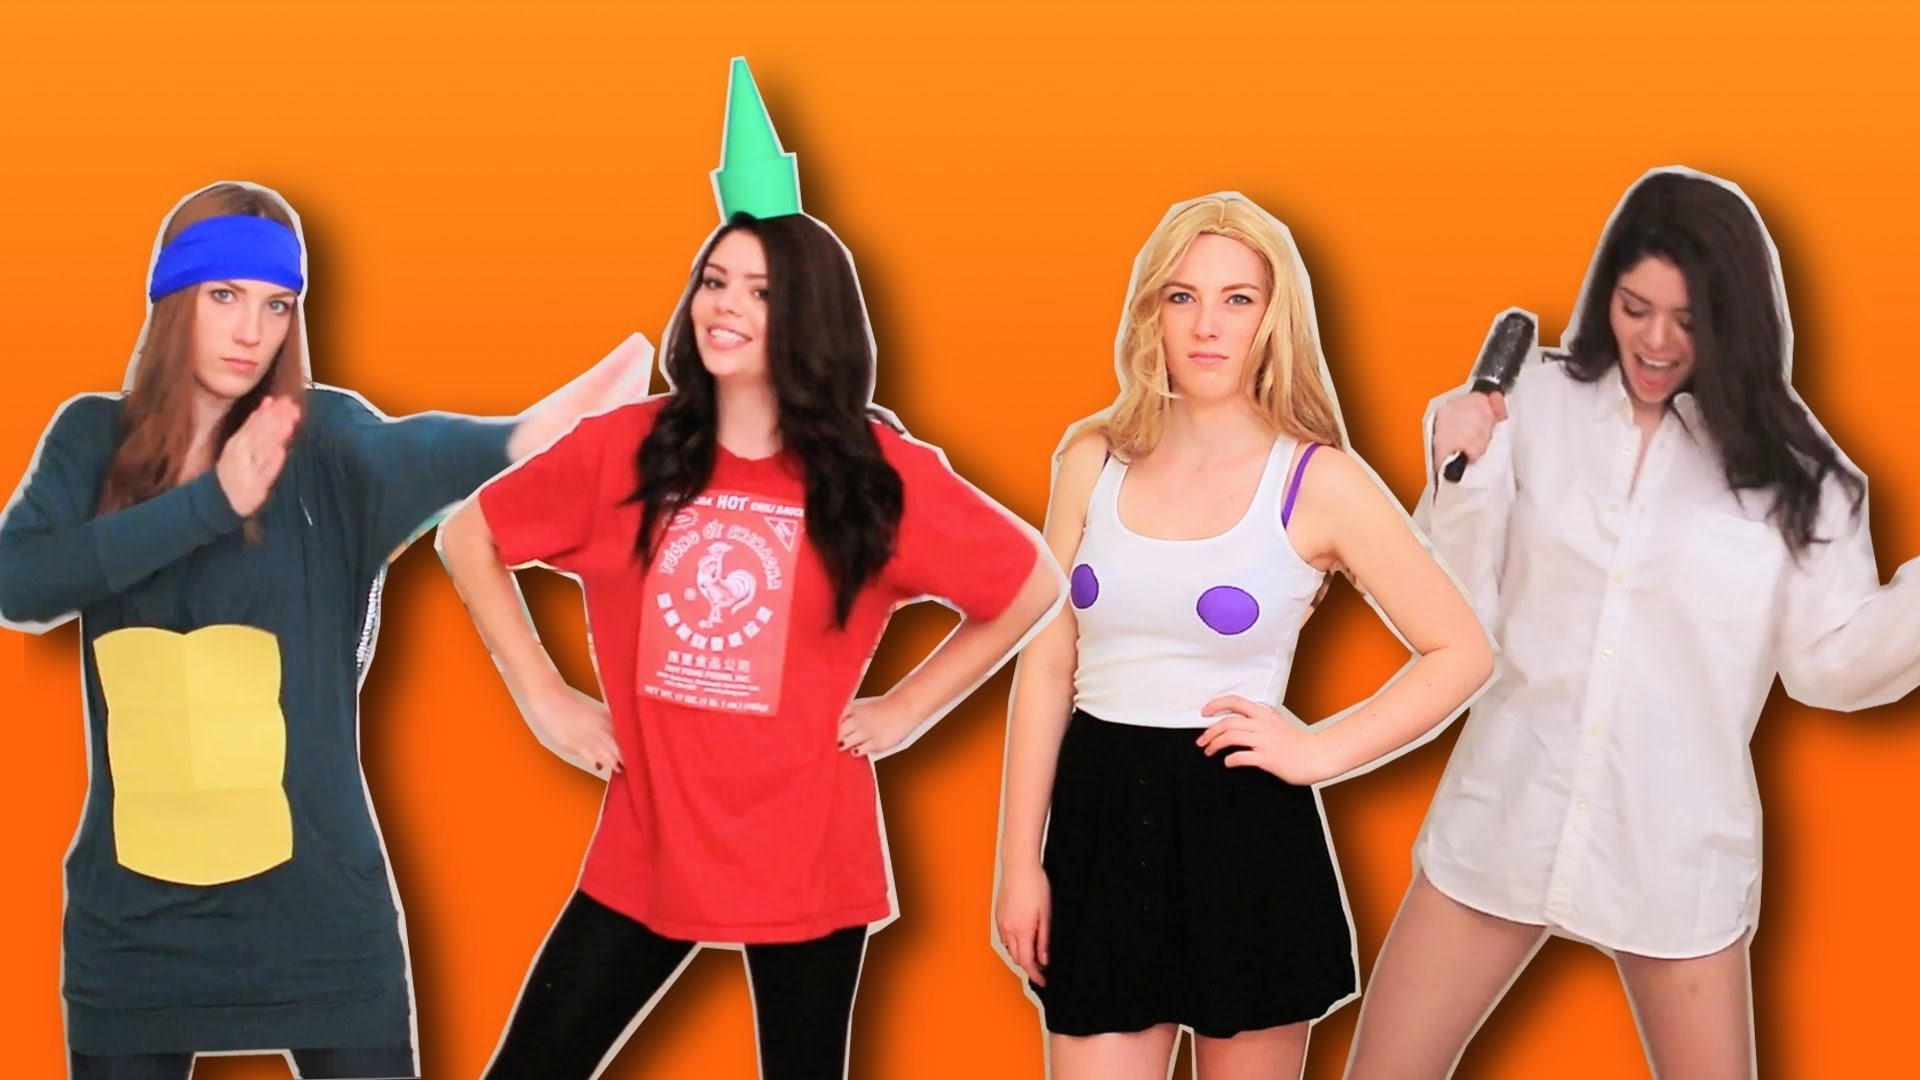 10 Cute Costume Ideas For 2 Girls last minute halloween costume ideas couples costumes youtube 2020